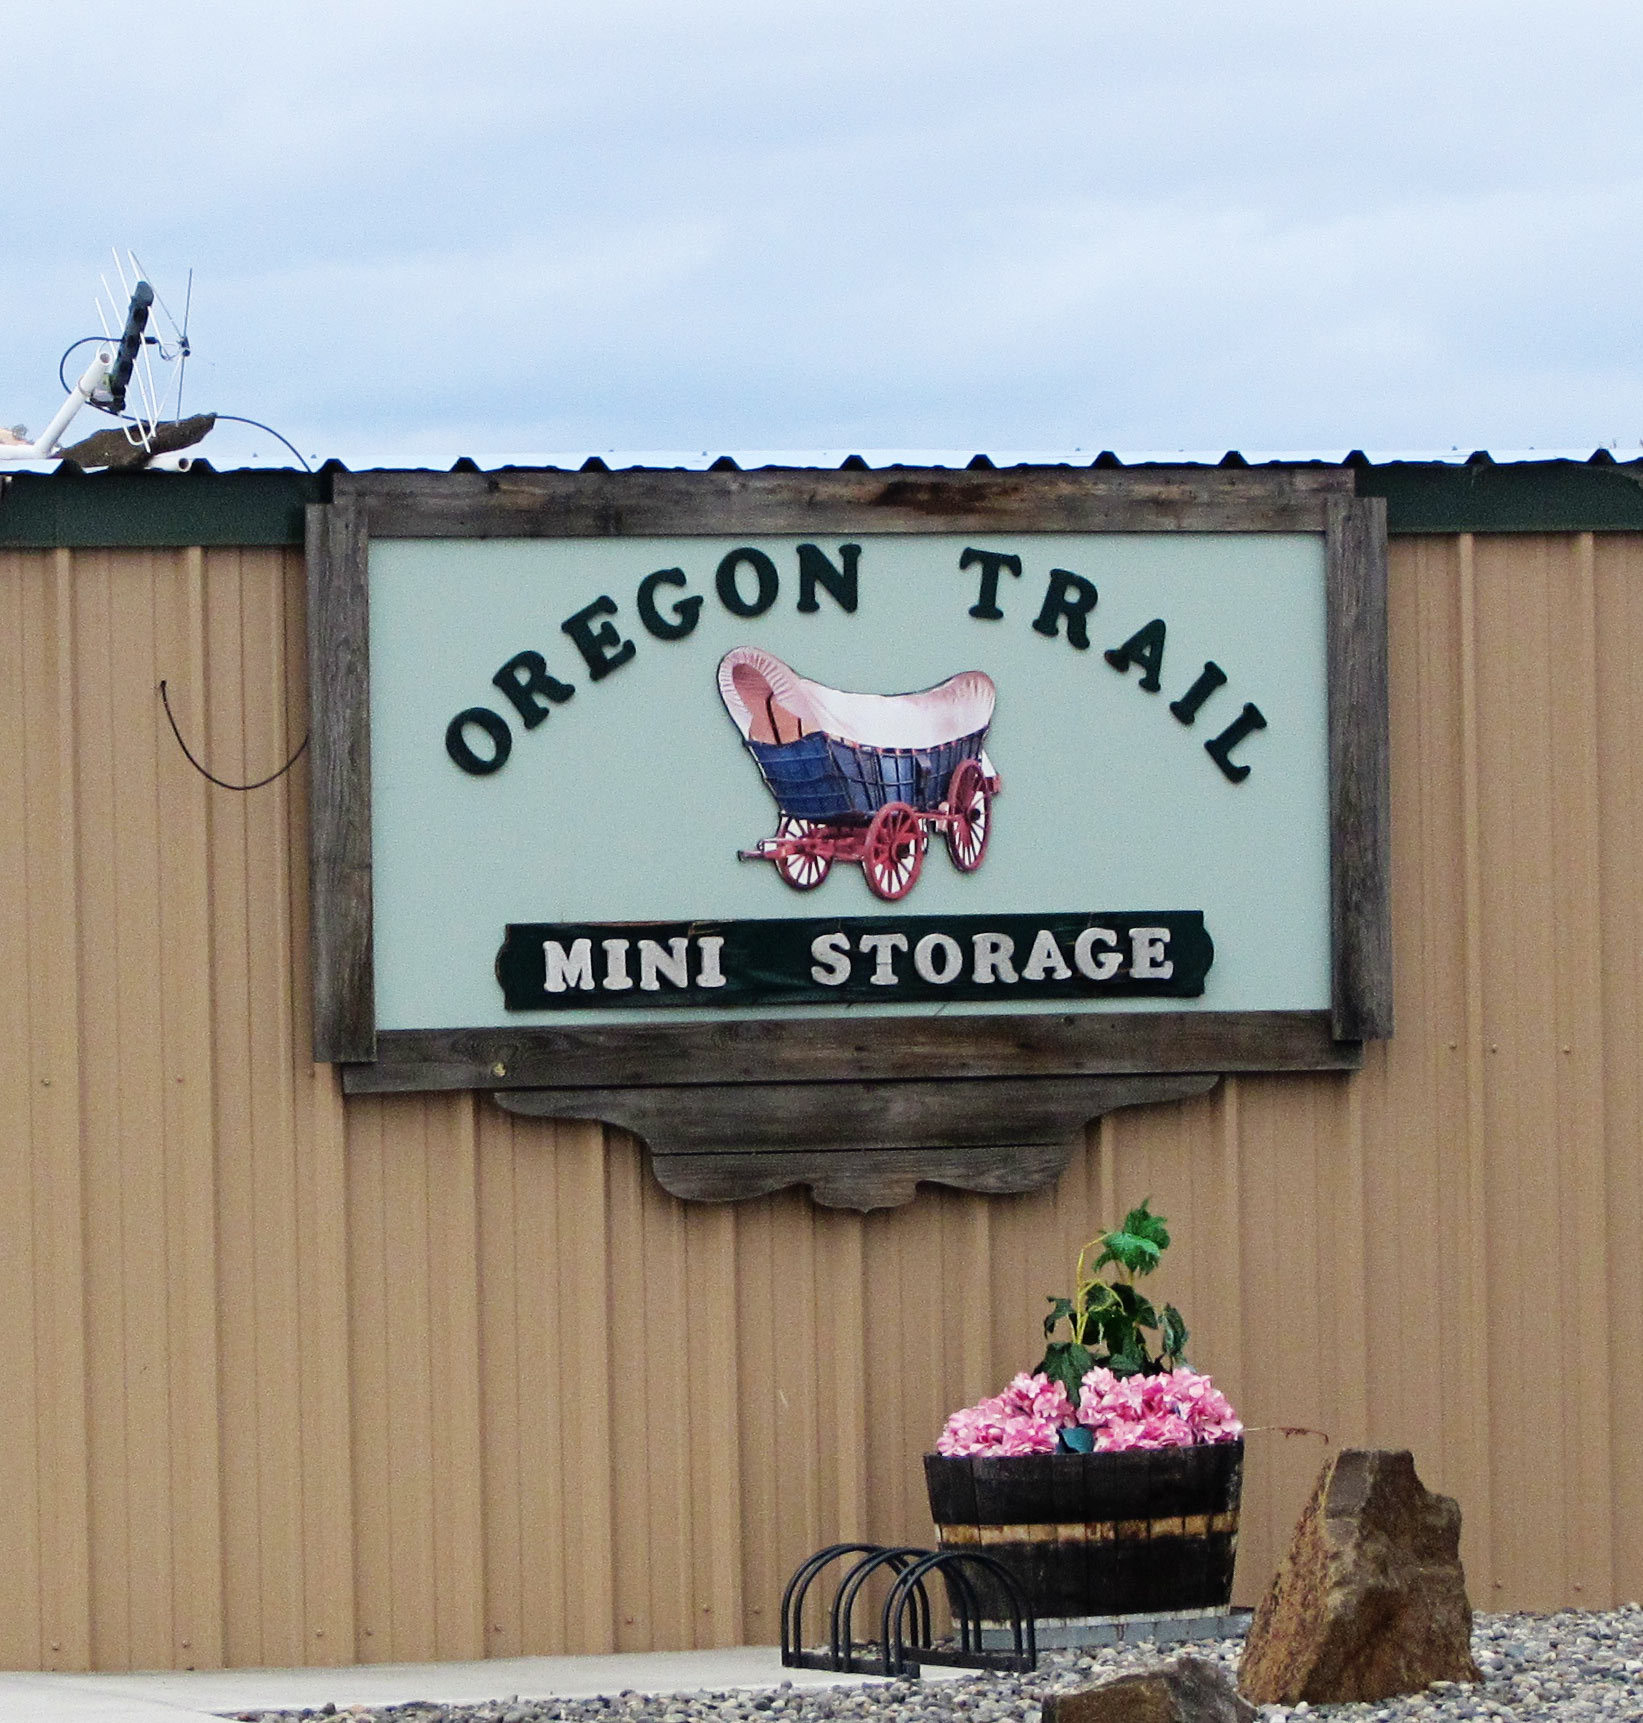 Mini Storage and Self Storage sign in The Dalles, Oregon